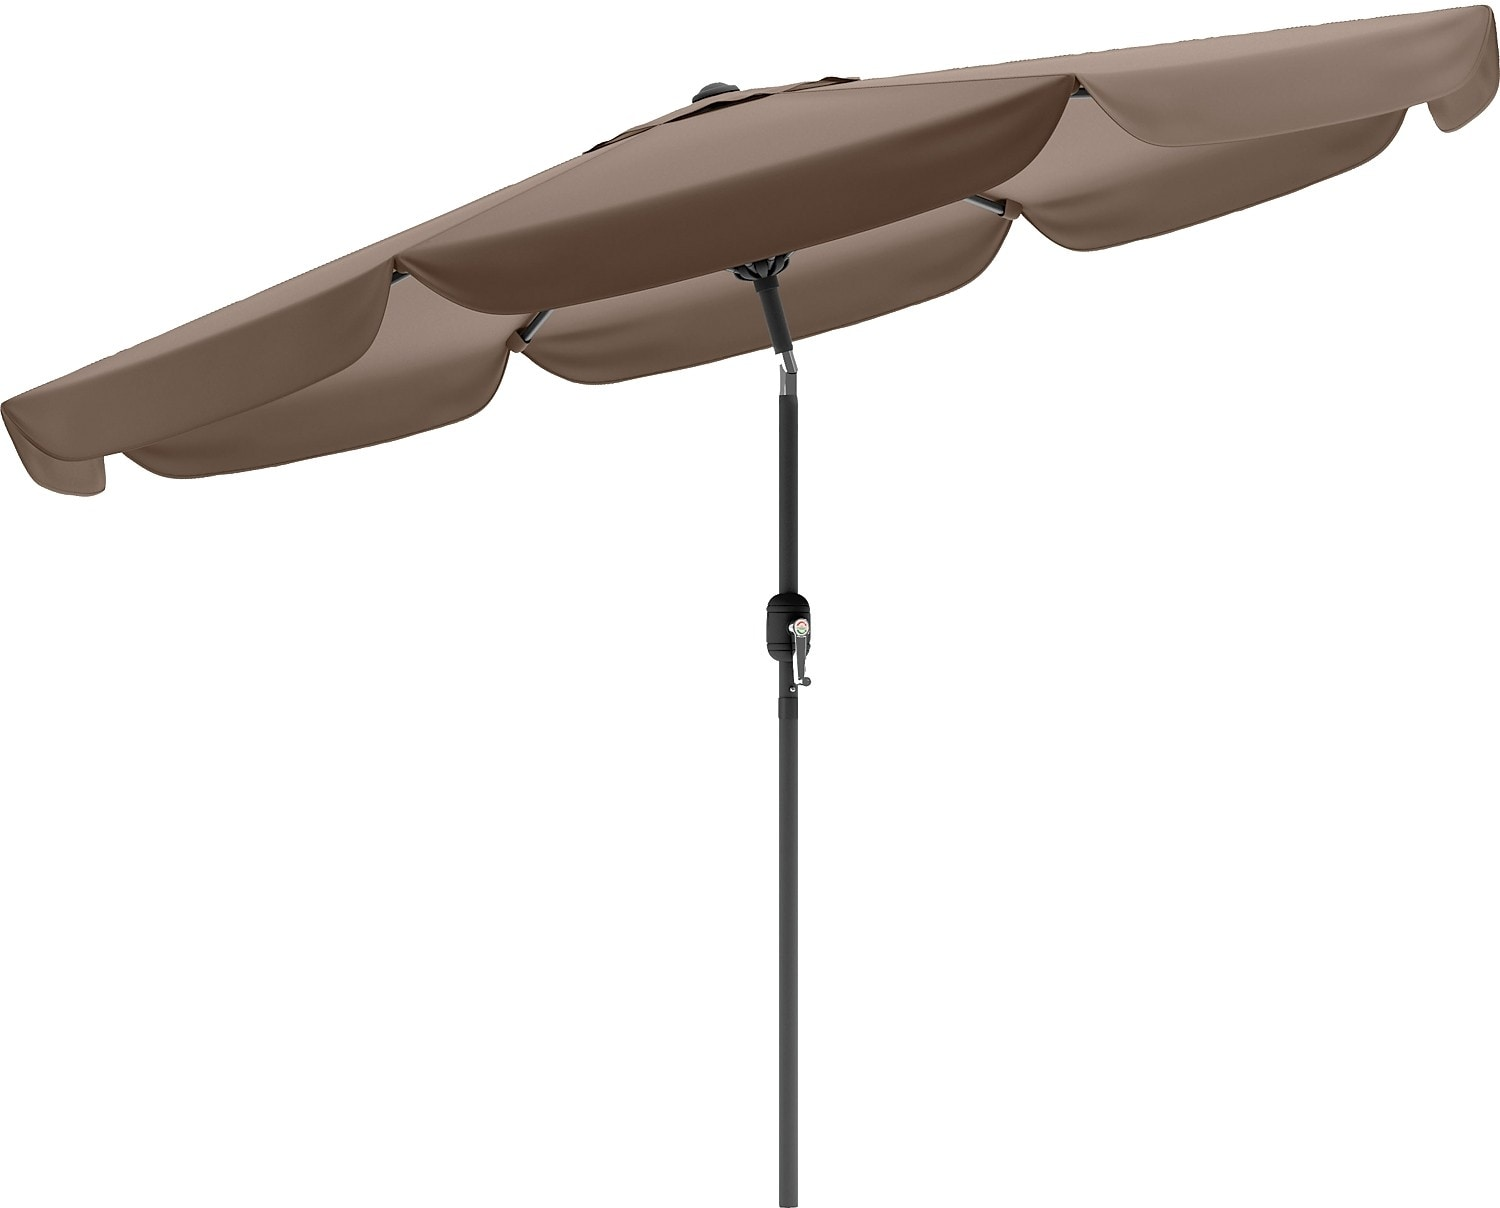 Tilting-Top Patio Umbrella – Sandy Brown